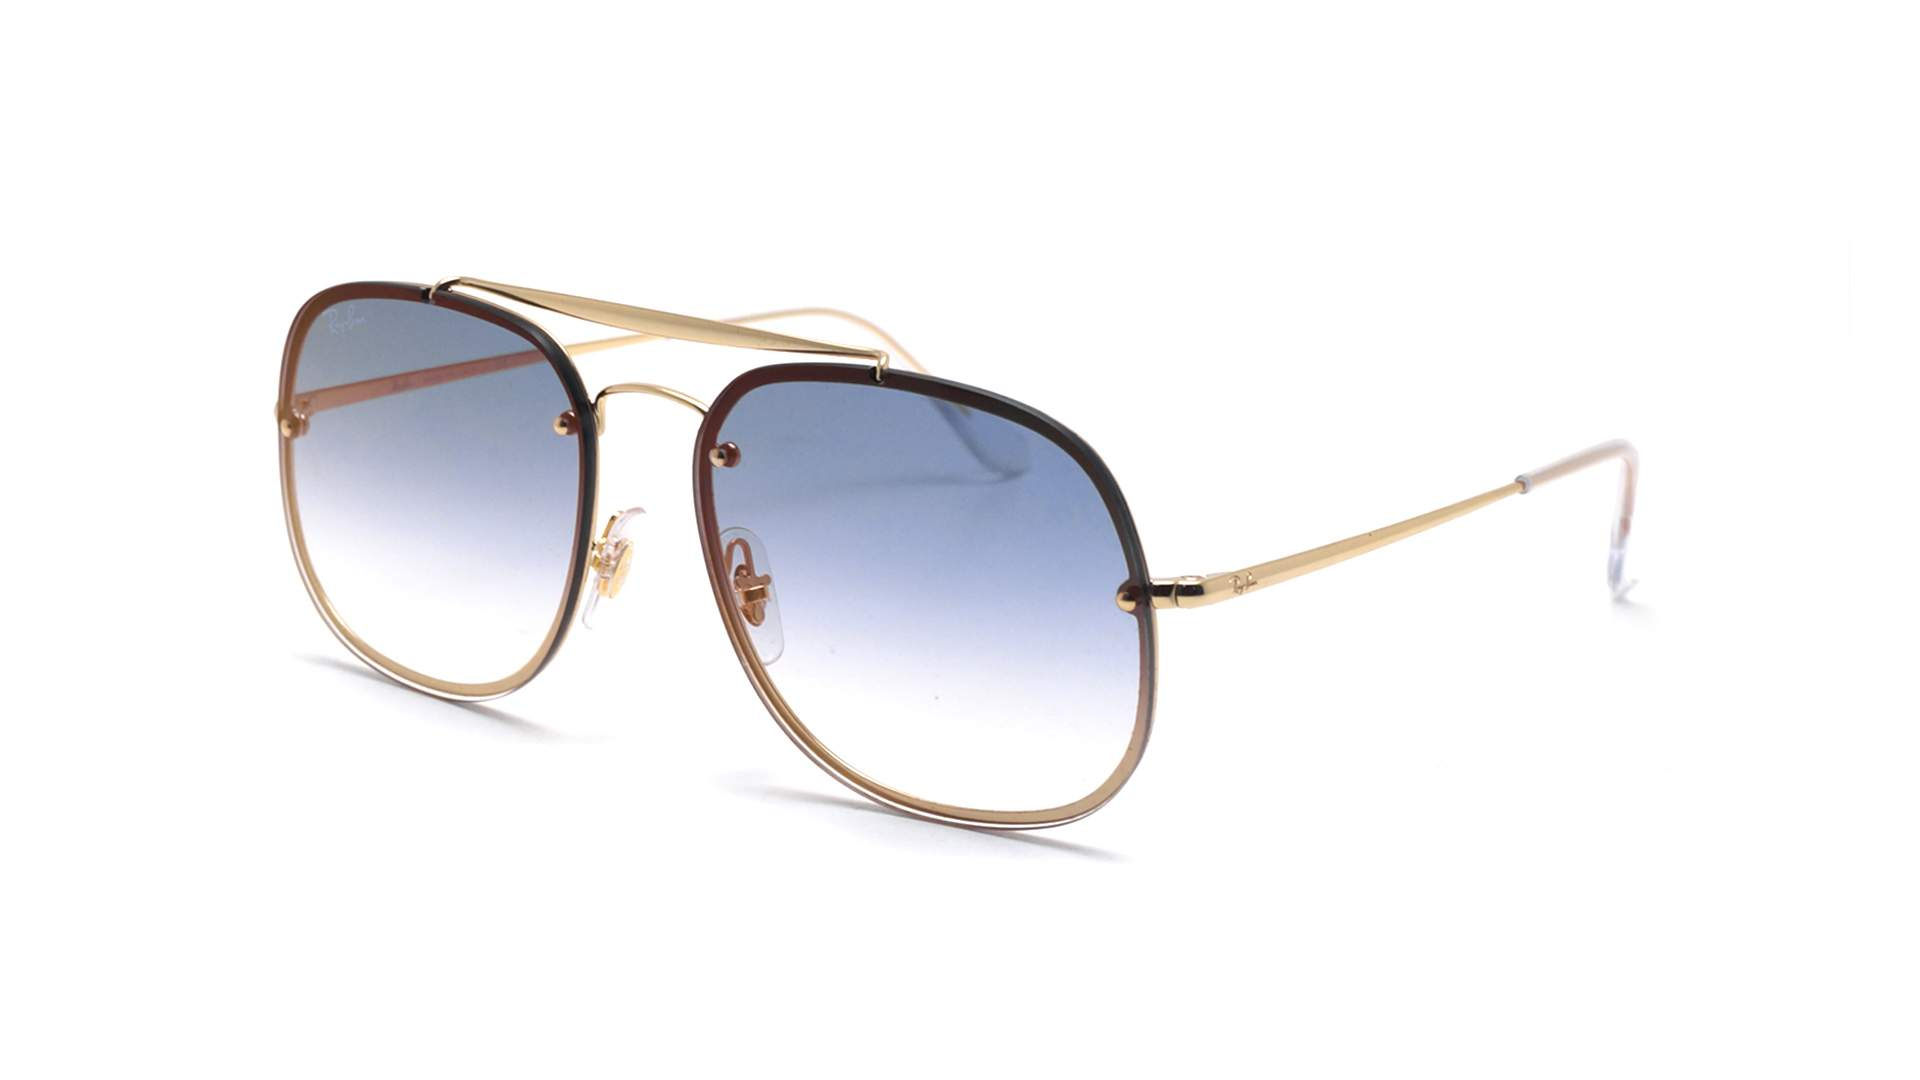 Sunglasses Ray-Ban General Blaze Gold RB3583N 001 X0 58-16 Large Gradient  Mirror 511ba32e7c77